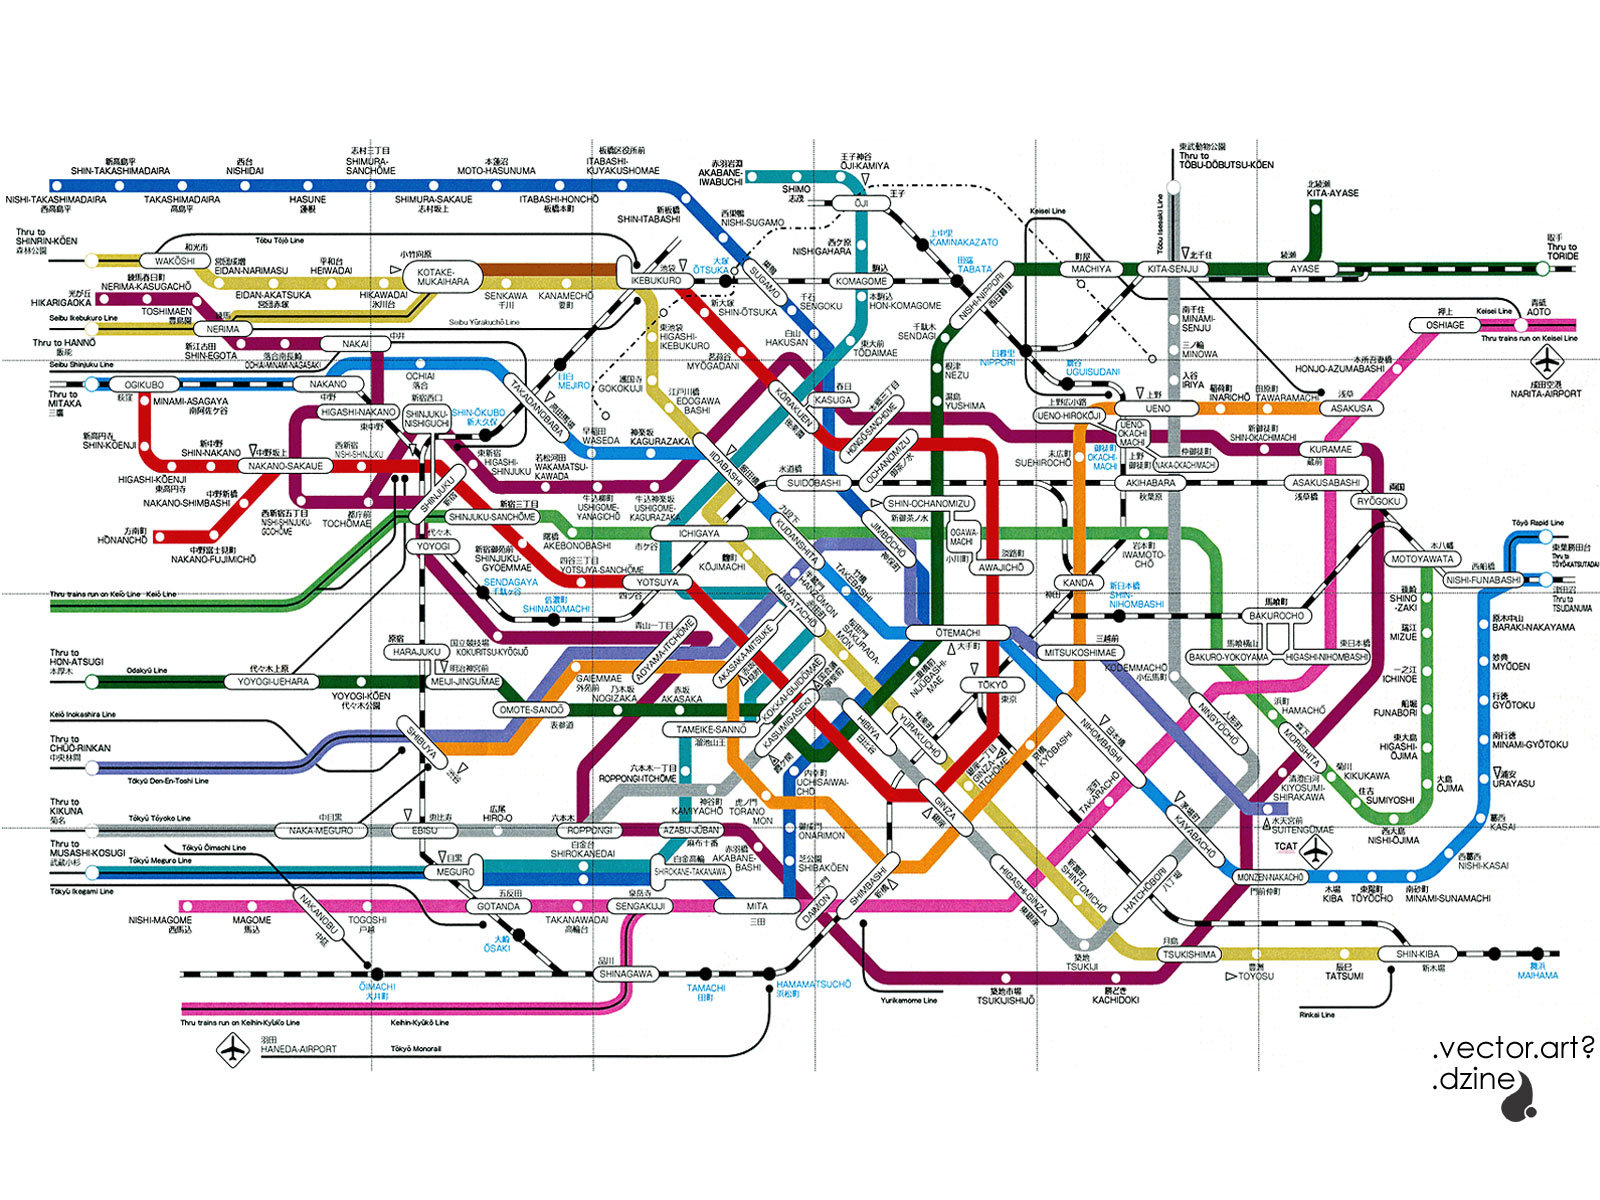 Tokyo Subway Map Art.18 Map Vector Art Images Free Vector World Map Free Vector City